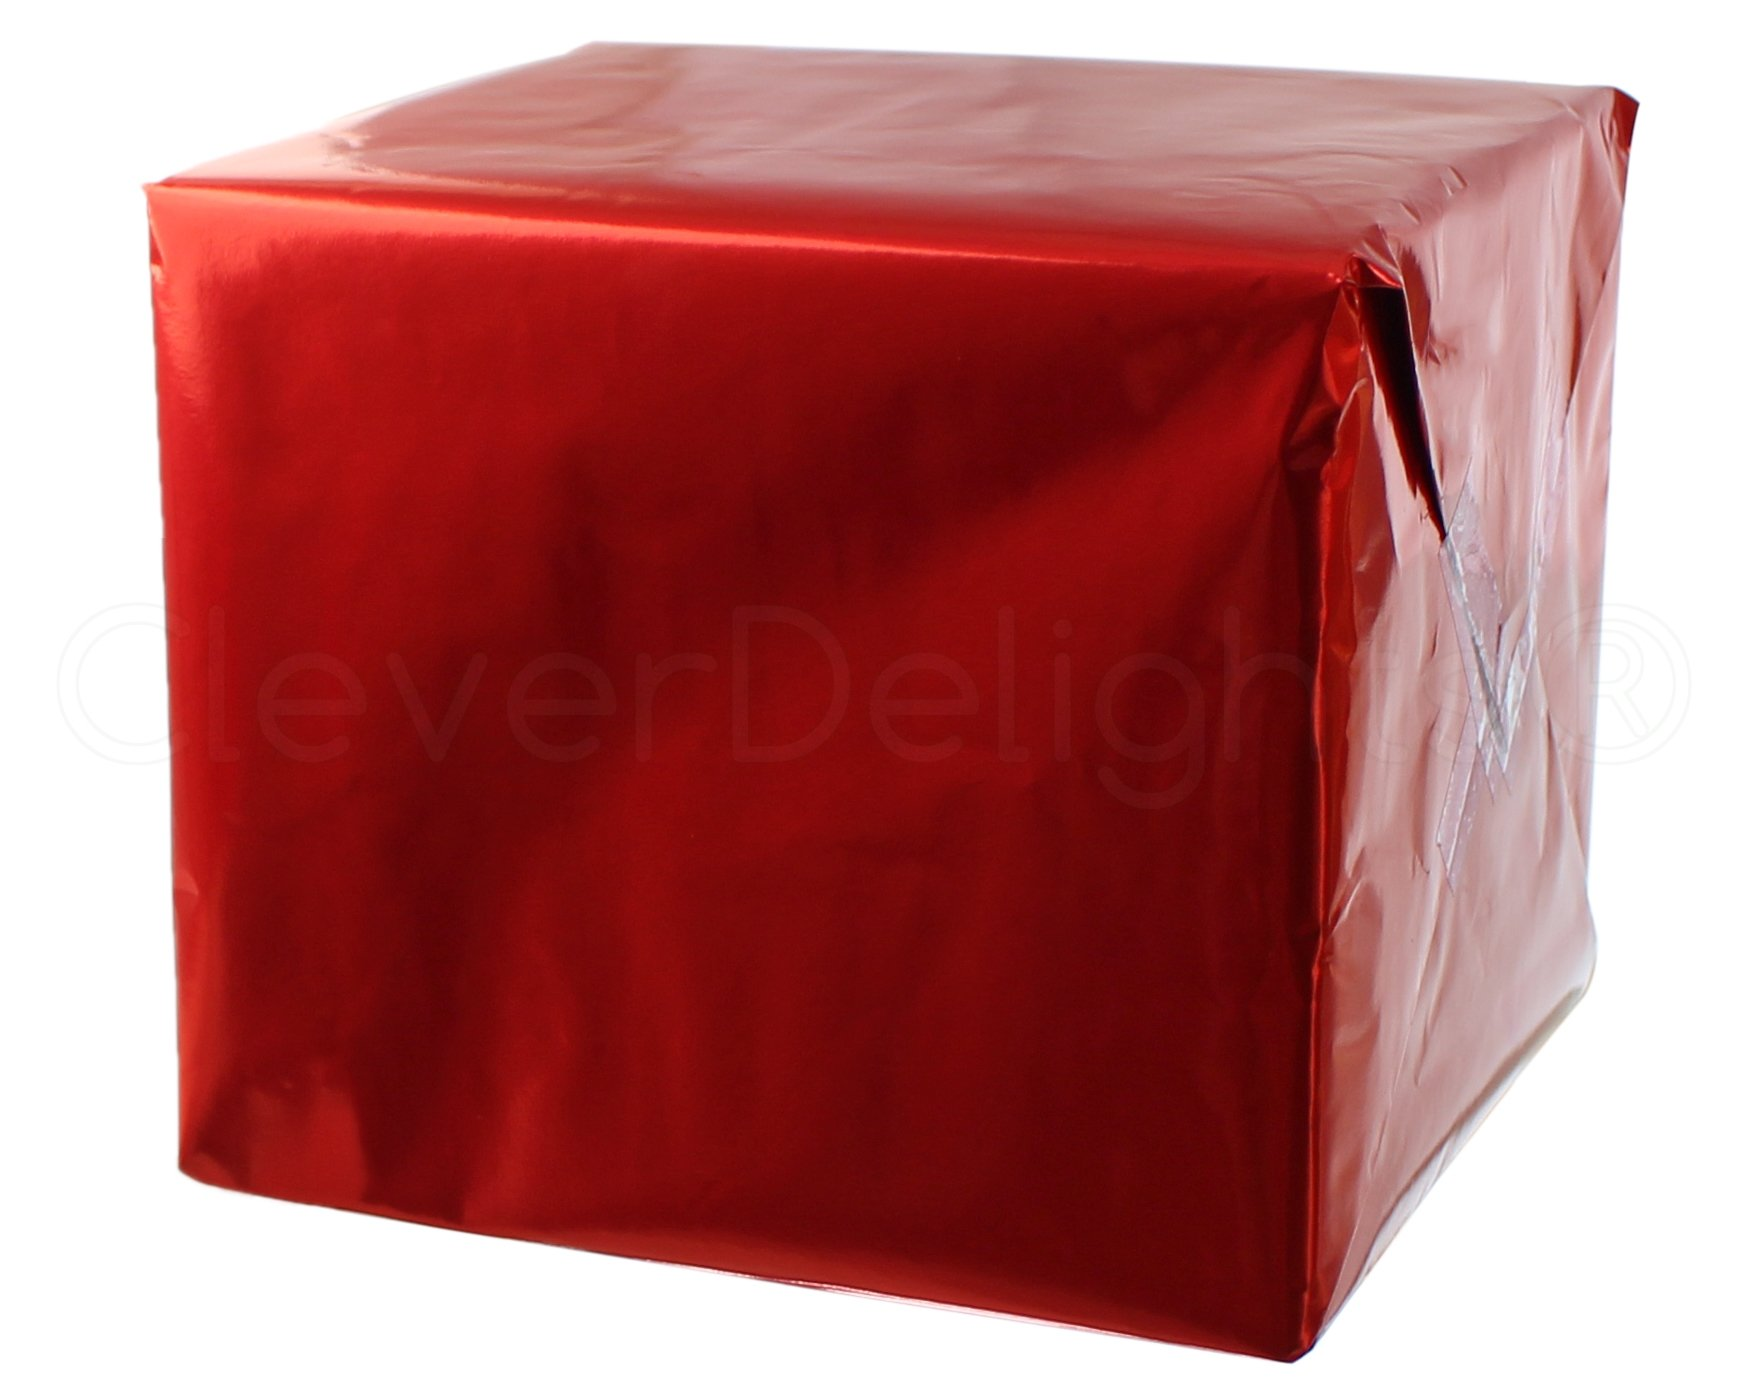 Amazon.com: CleverDelights Metallic Gold Wrapping Paper ...